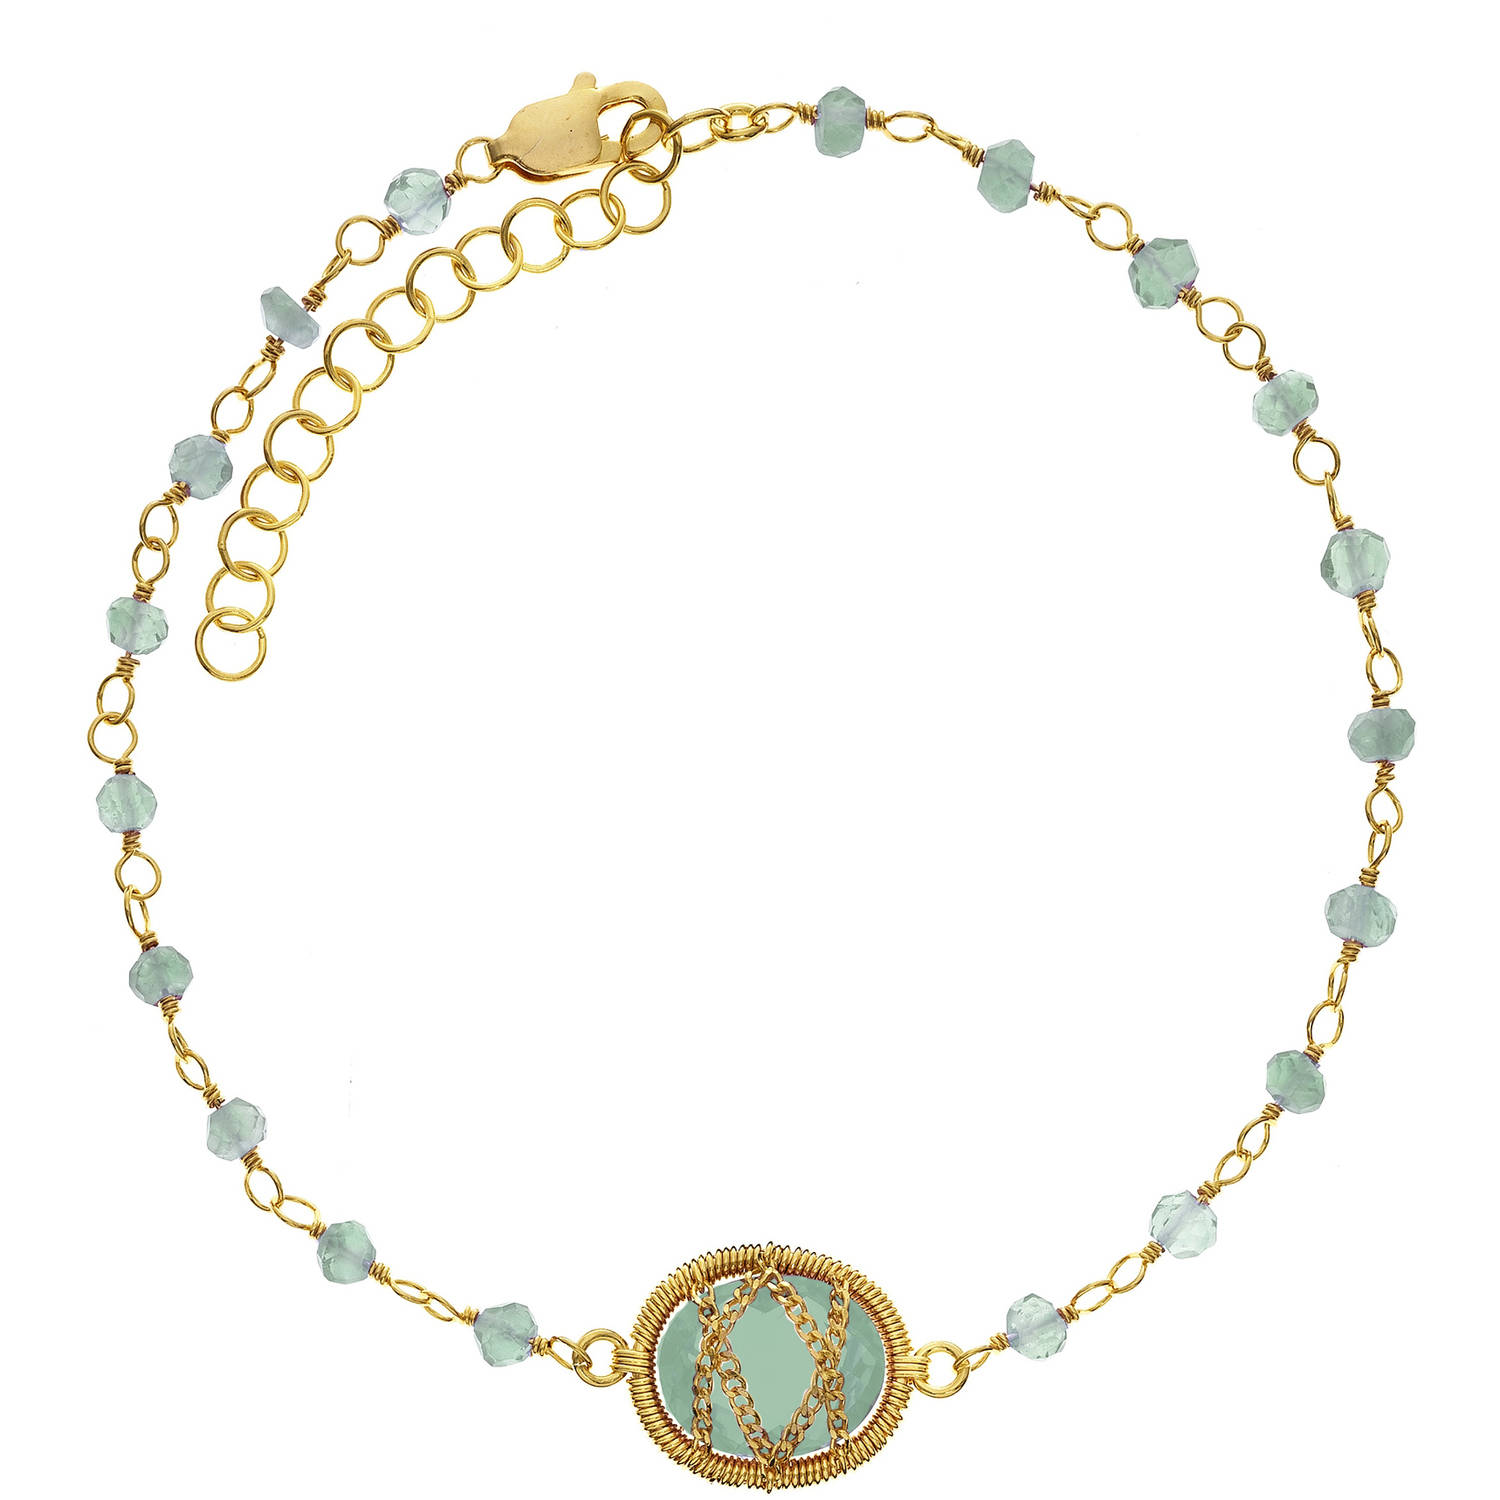 Image of 5th & Main 18kt Gold over Sterling Silver Hand-Wrapped Beaded Chalcedony Stone Bracelet